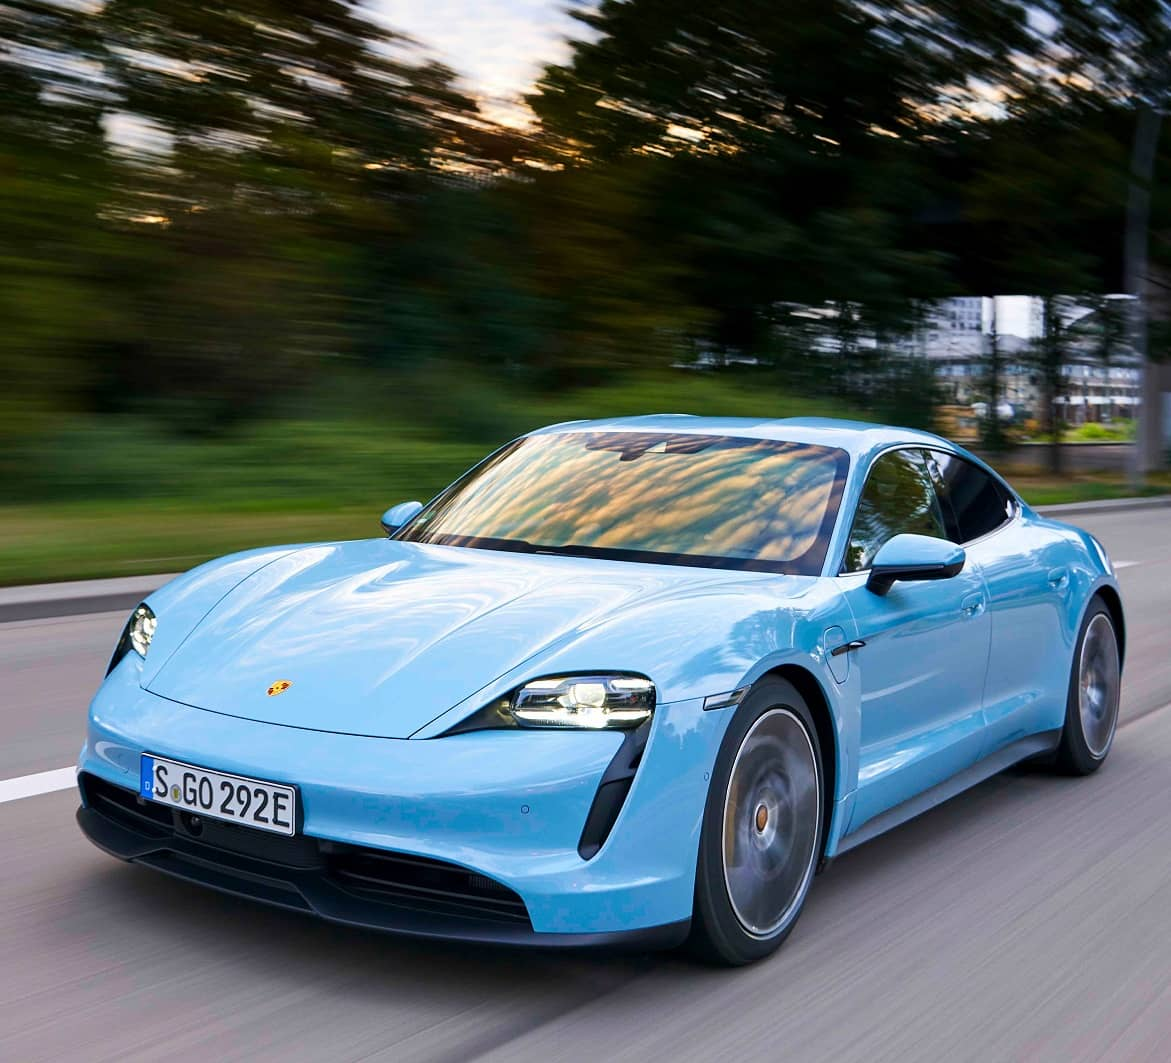 WHY ELECTRIC VEHICLE RANGES VARY FROM EPA ESTIMATE